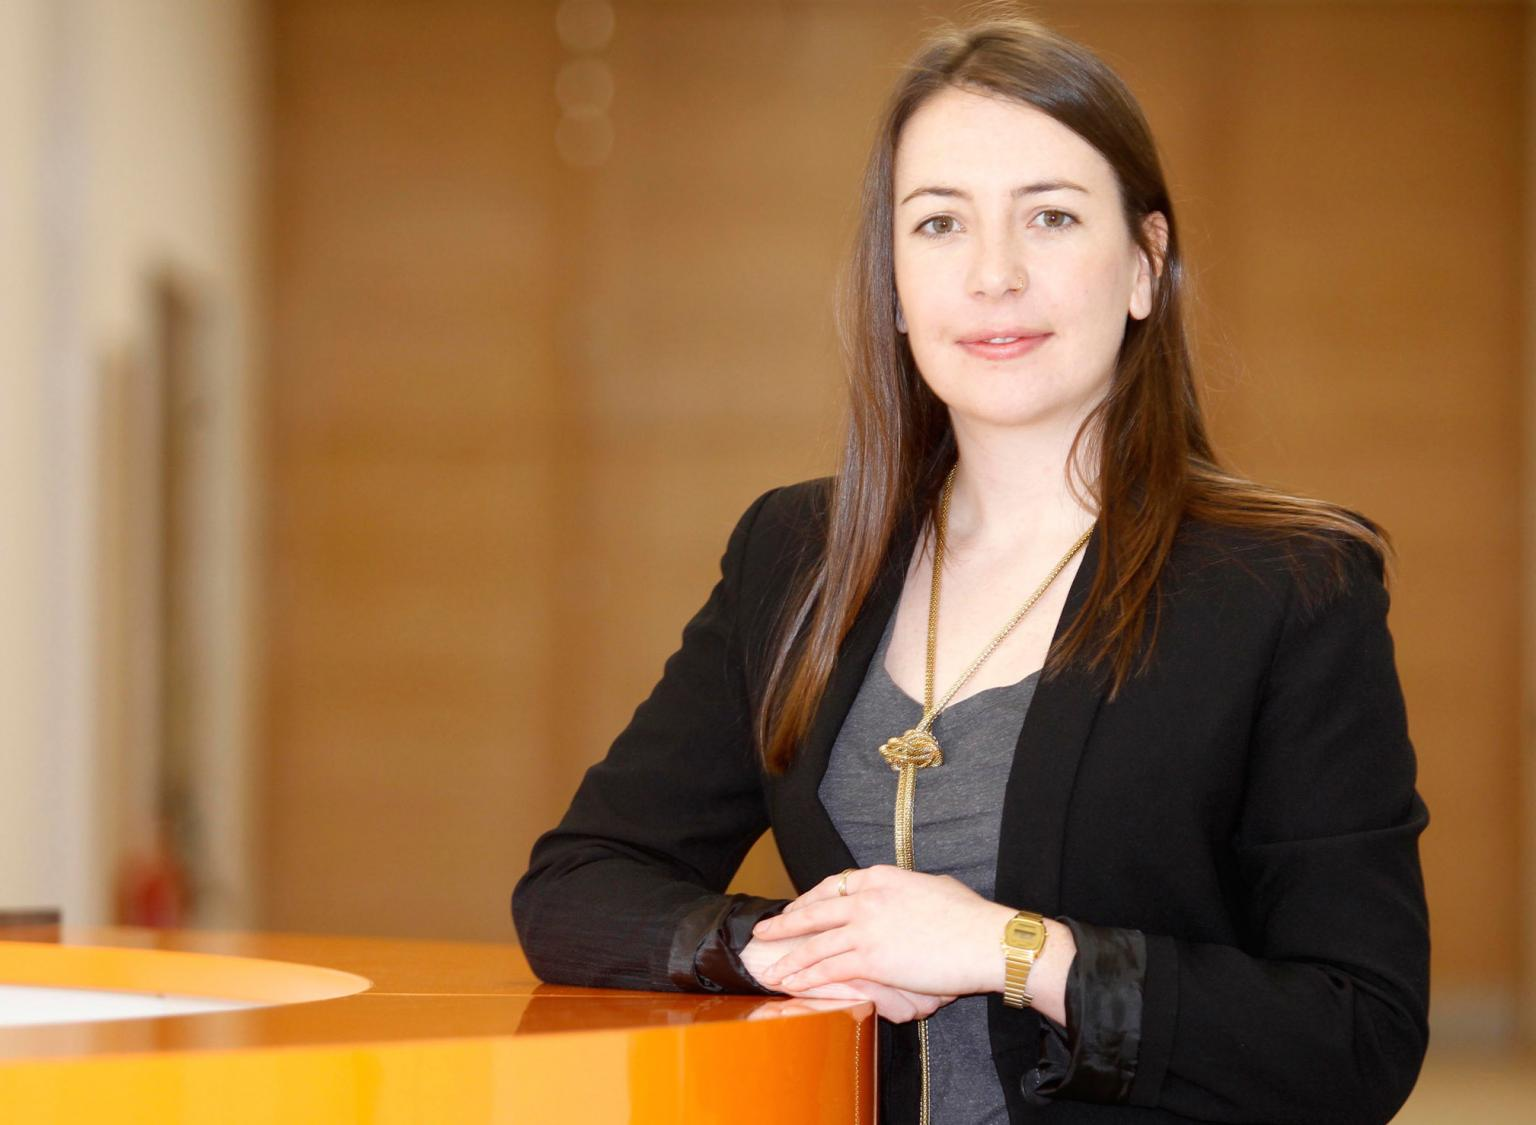 Lucy Ackland is project manager at engineering company Renishaw and winner of the Women's Engineering Society Prize at the IET's 2014 Young Woman Engineer of the Year award